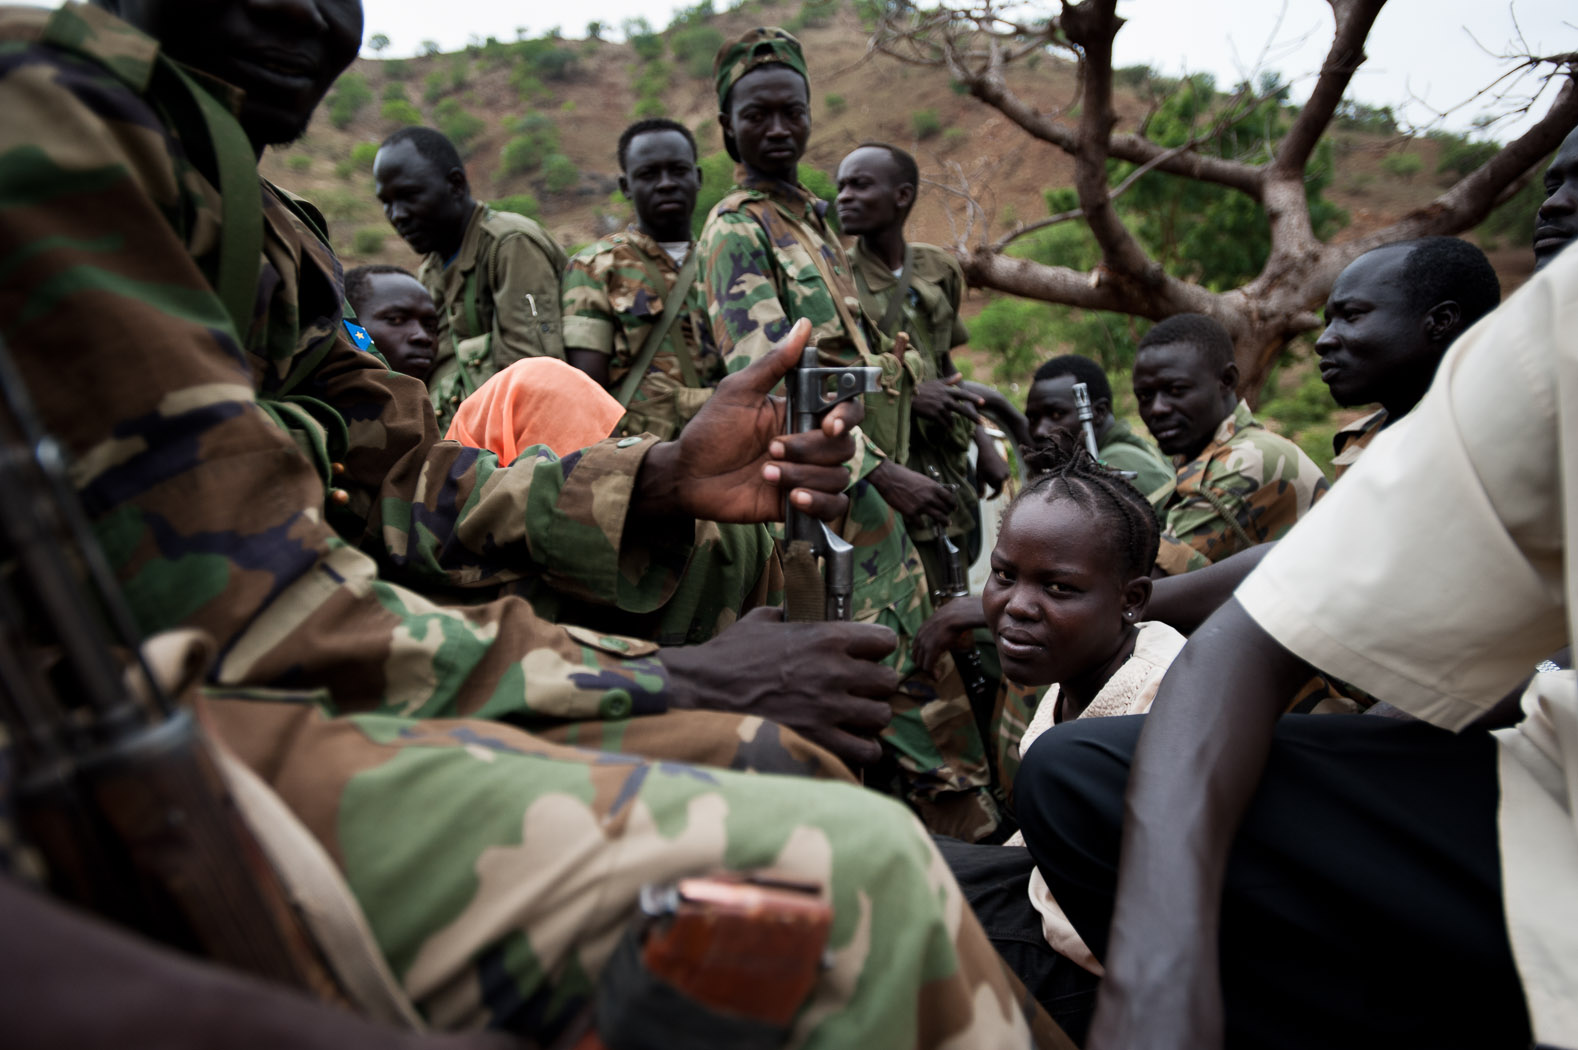 A group of SPLM-North troops drive through the rocky roads in the Nuba mountains of Sudan's South Kordofan state, transporting with them a civilian lady in this unforgiving landscape.